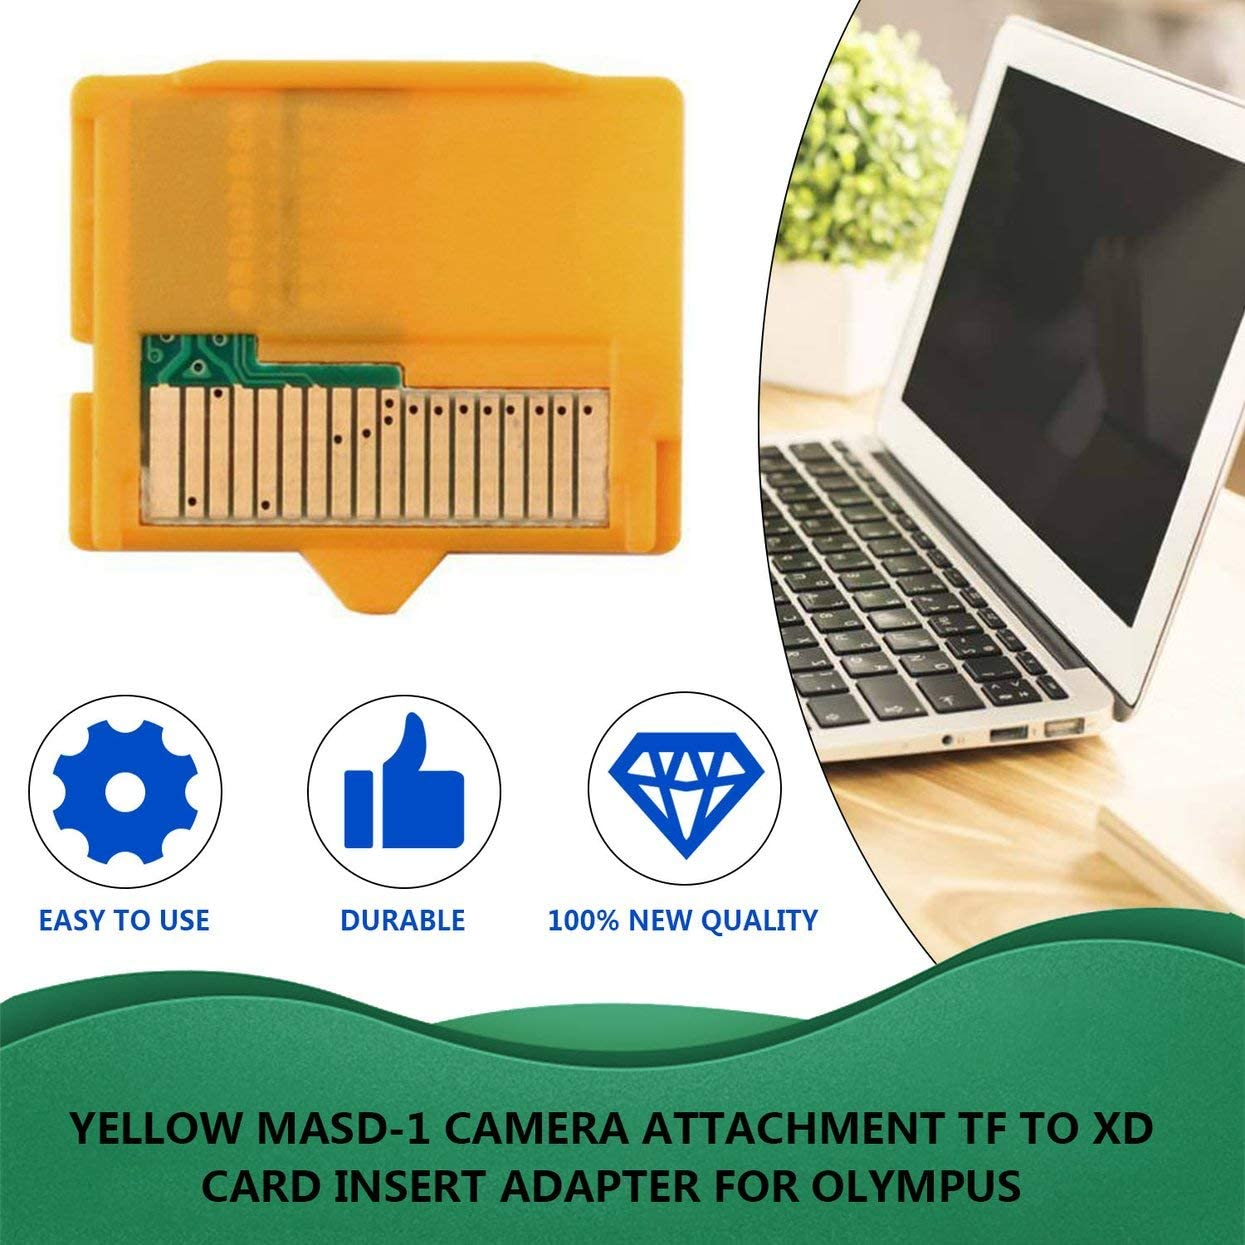 profectlen-US Yellow 25 x 22 x 2mm L x W xH 1pcs Micro SD Attachment MASD-1 Camera TF to XD Card Insert Adapter for Olympus